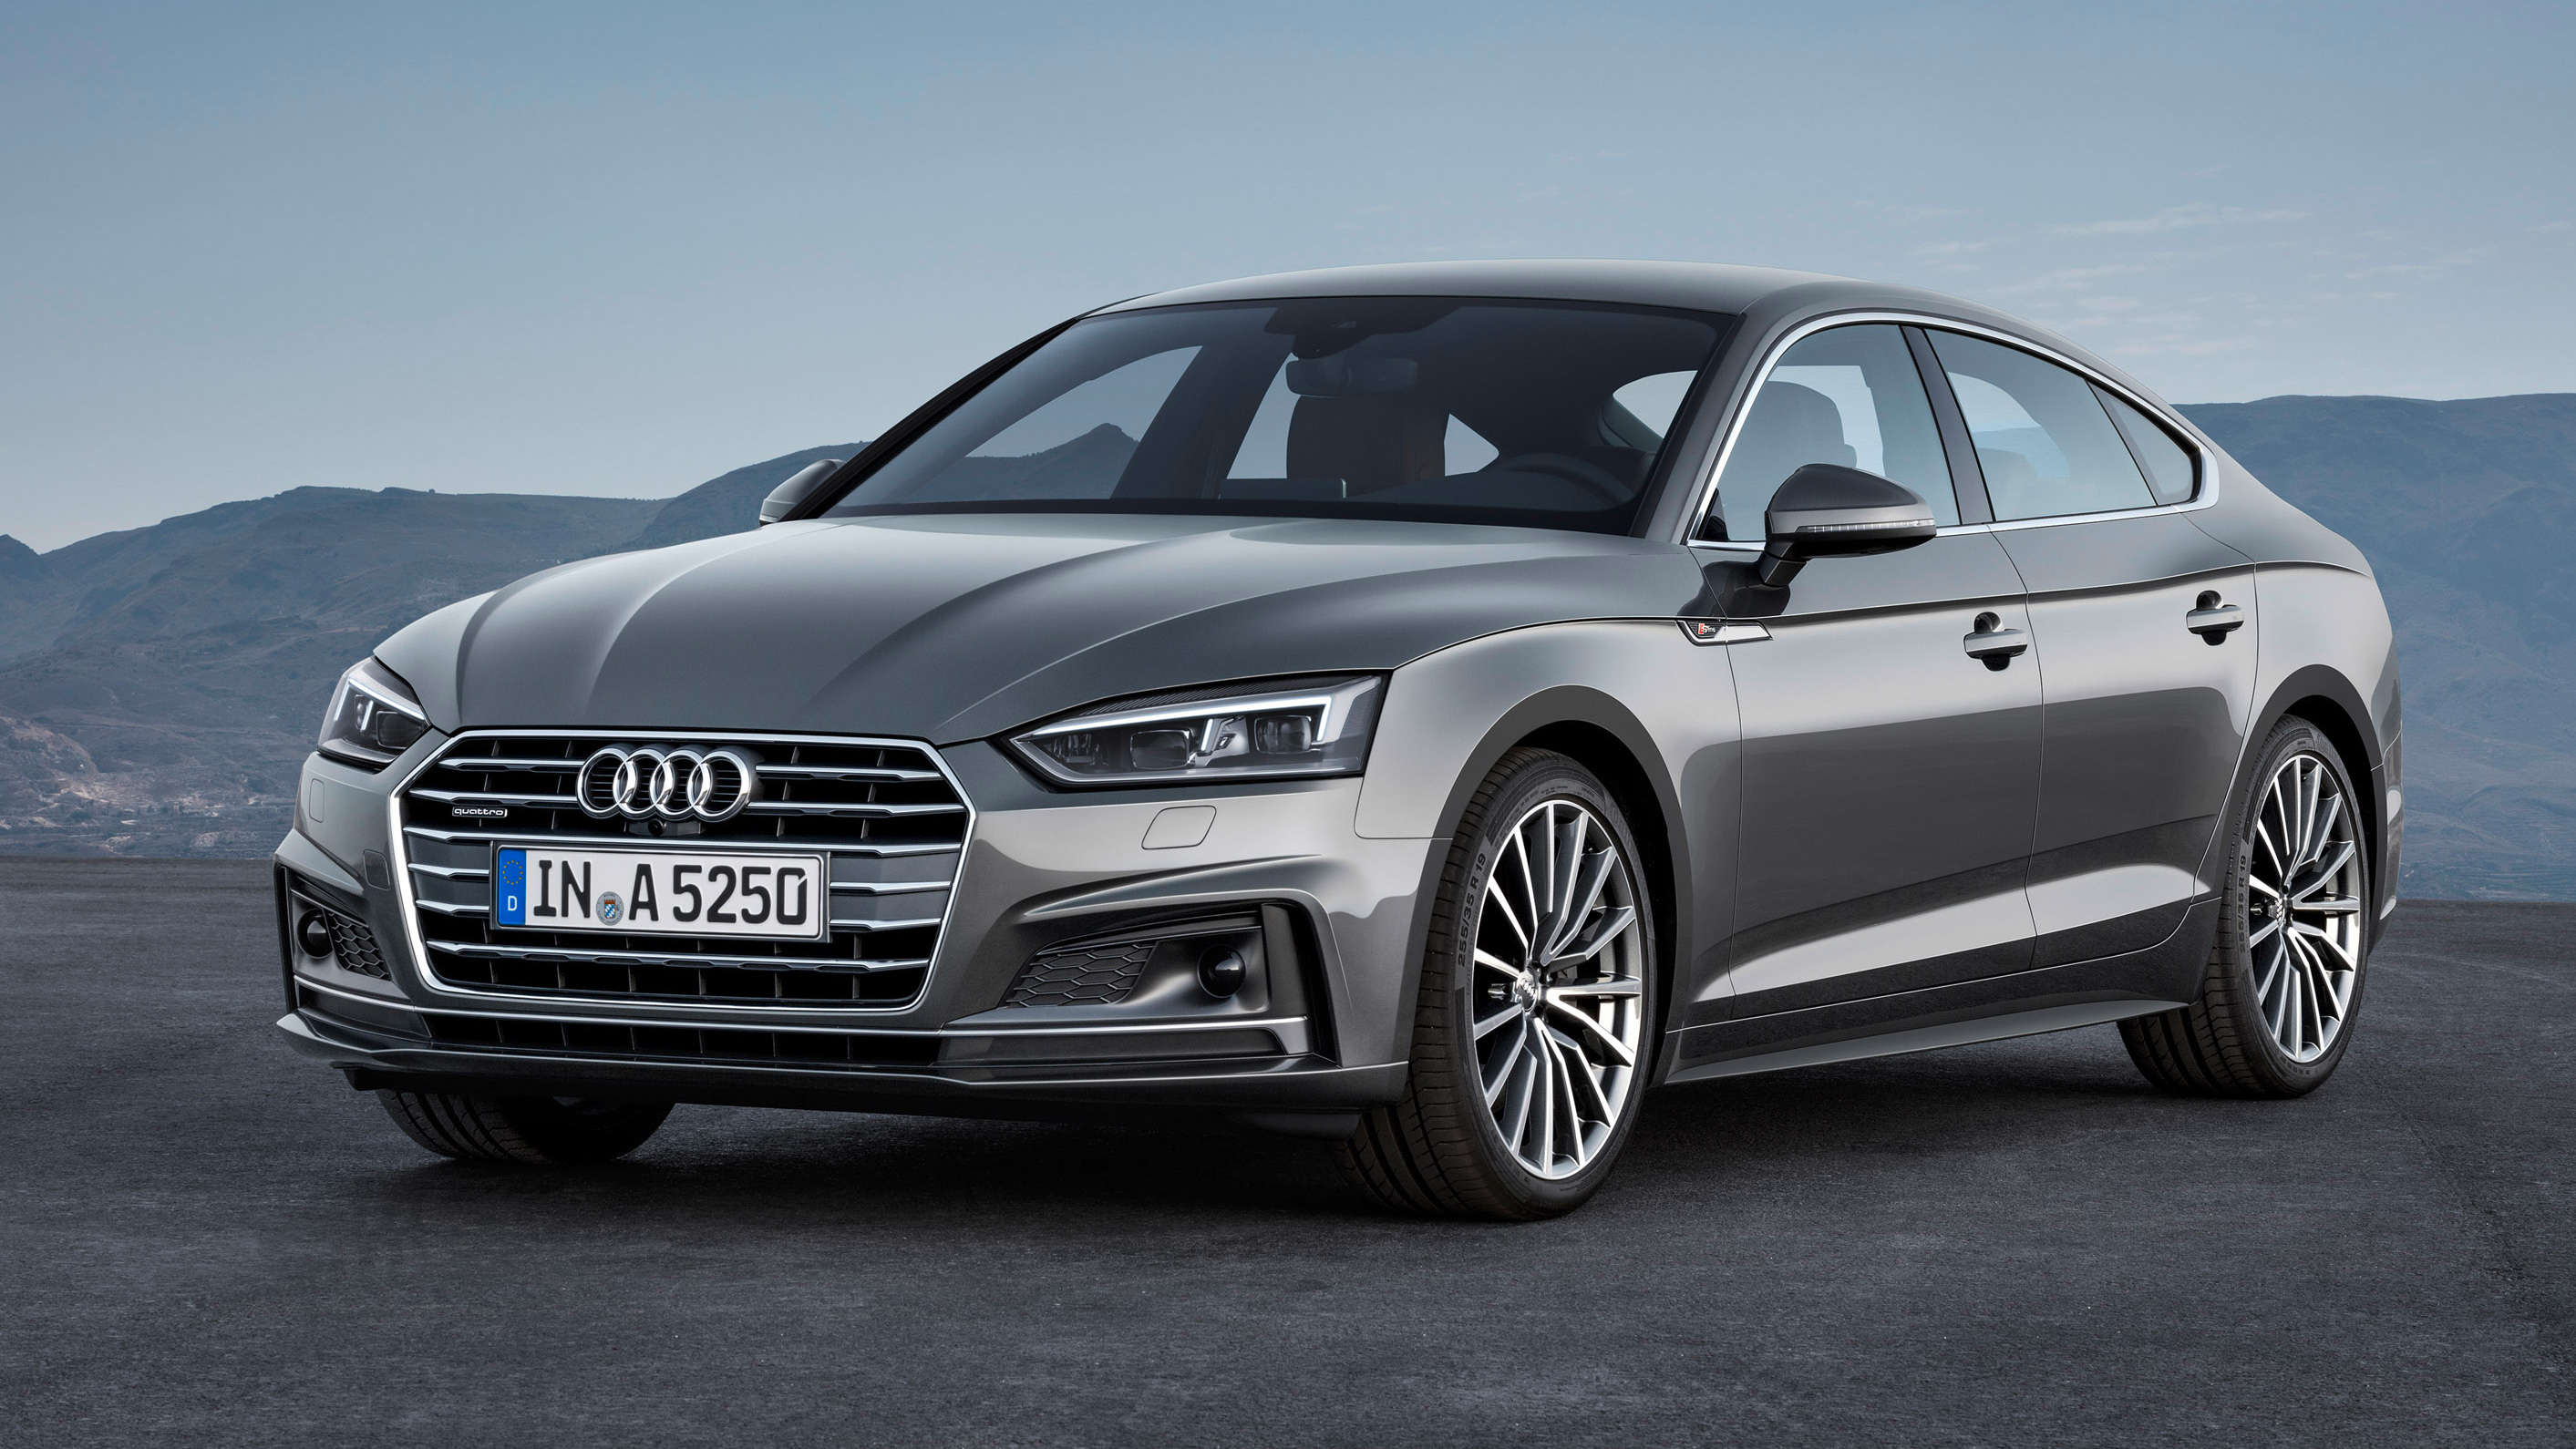 2826x1590 - Audi A5 Wallpapers 14